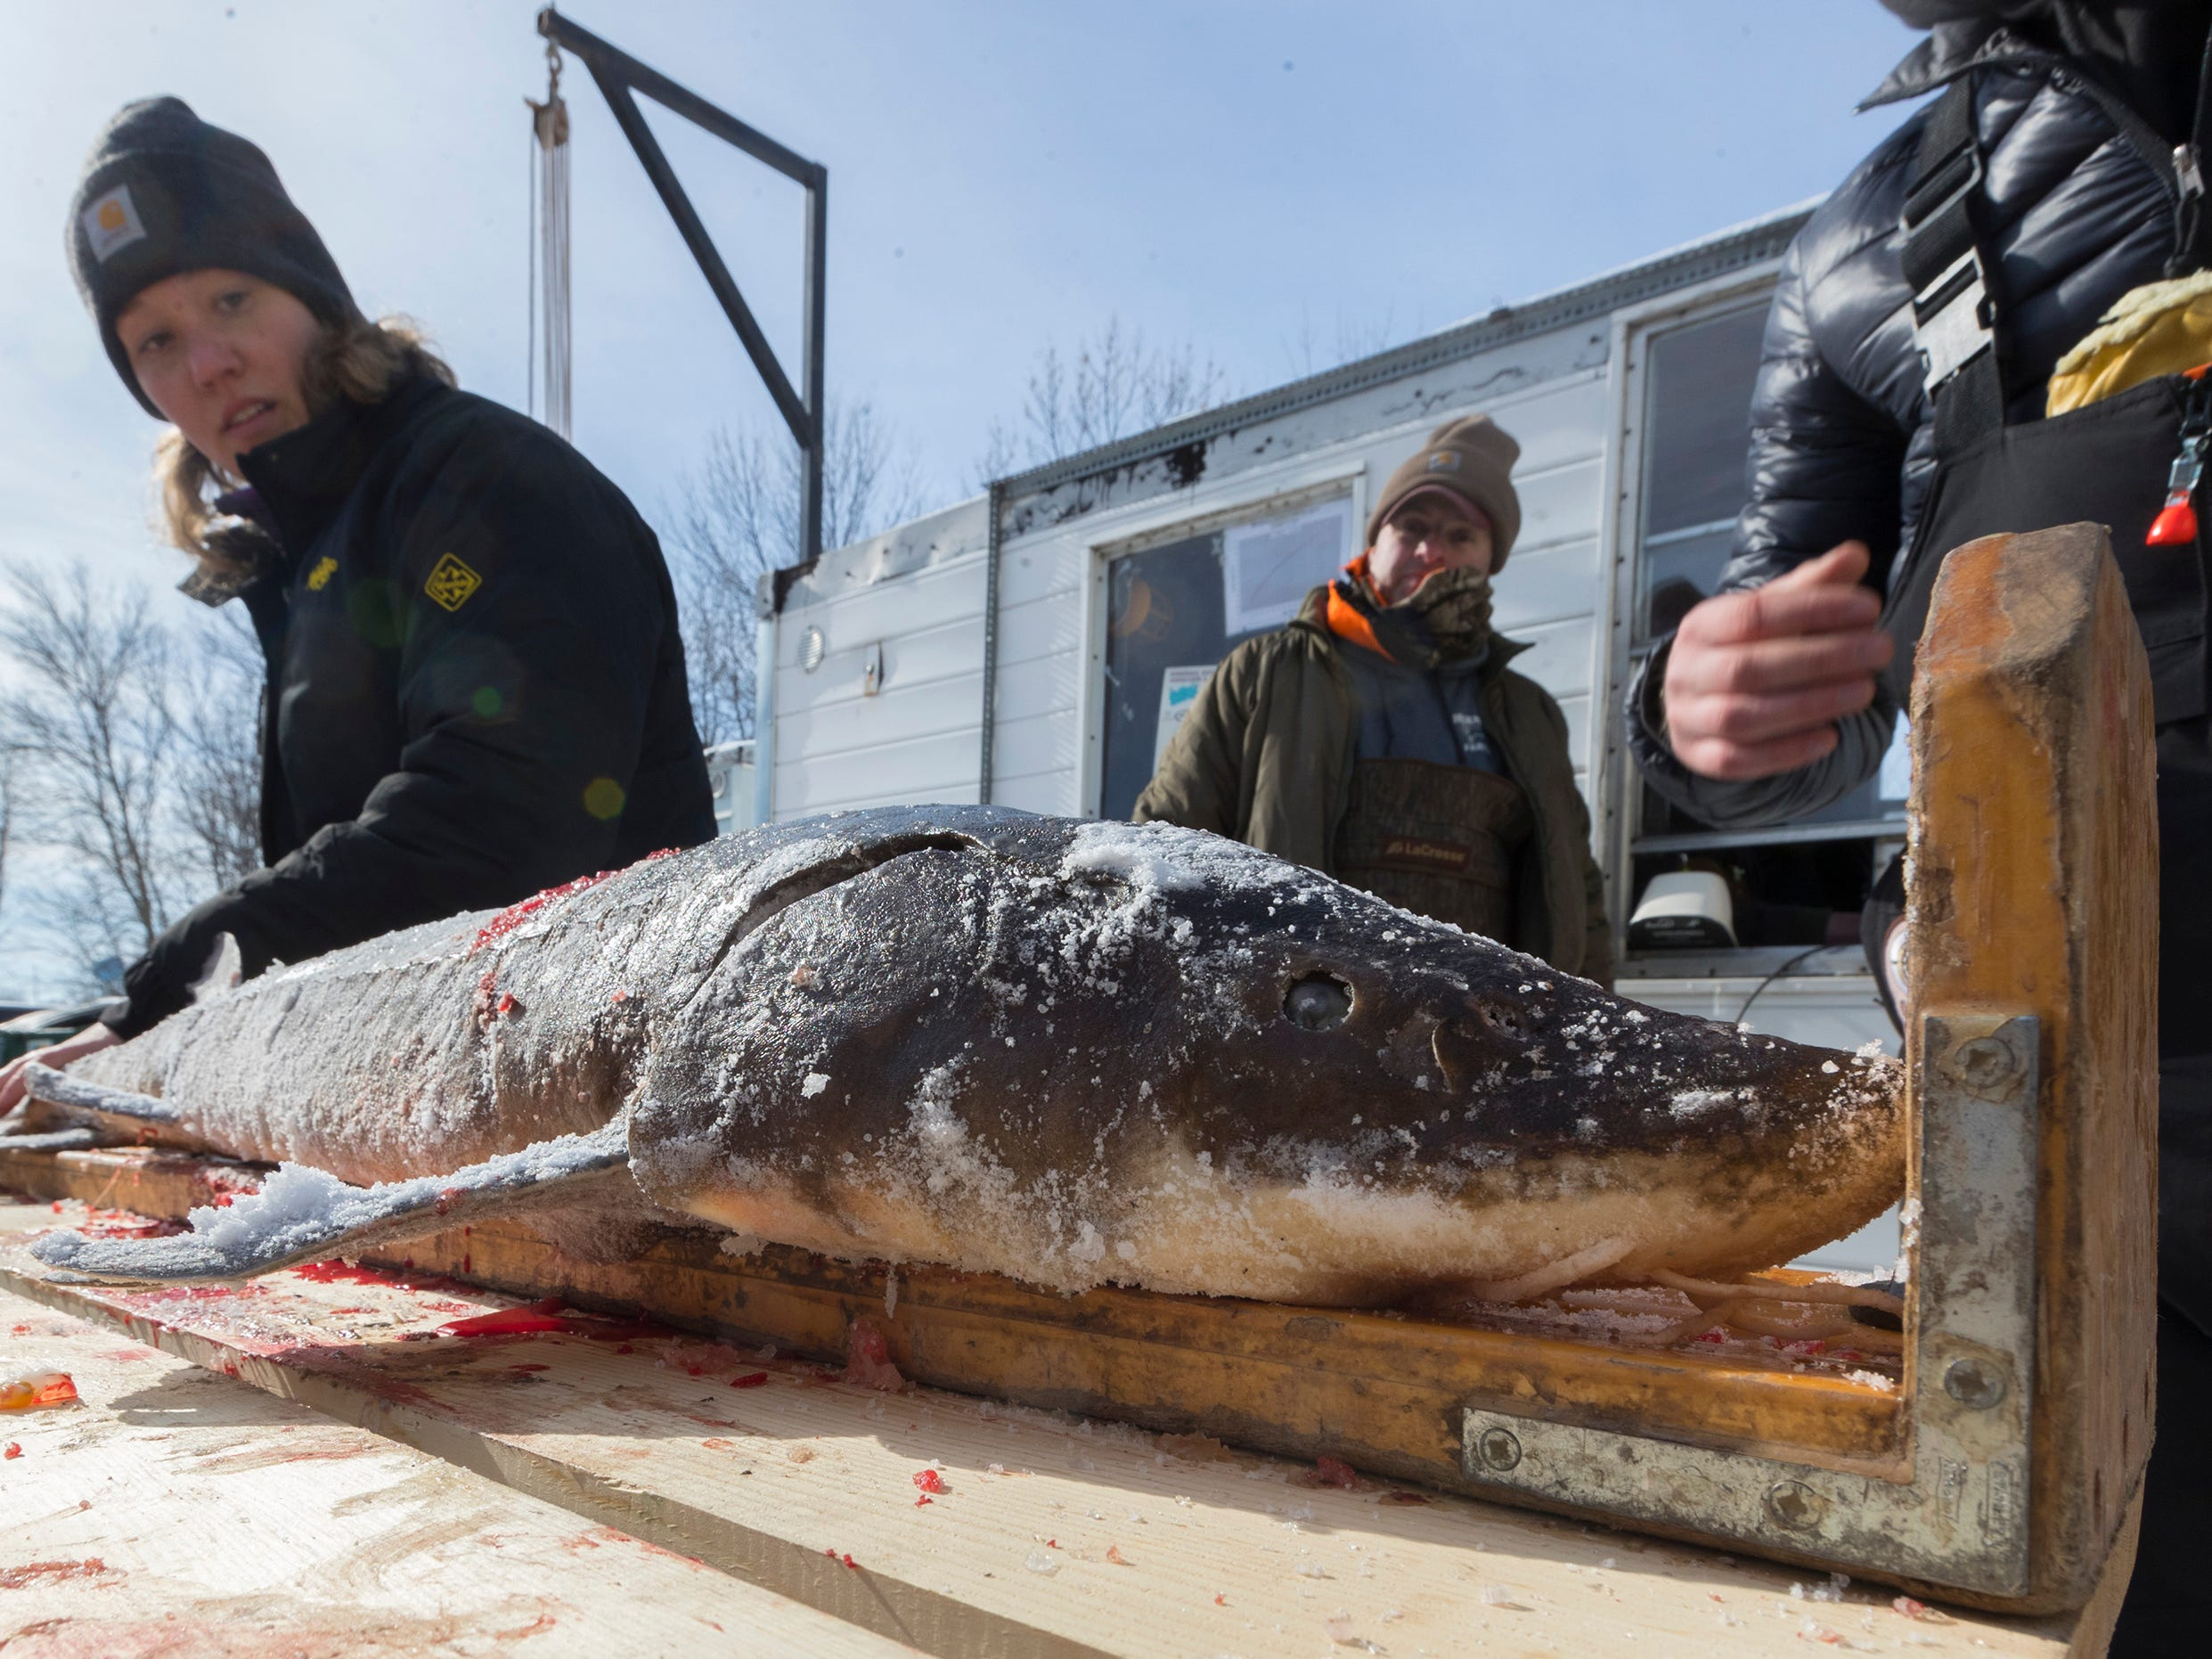 Sturgeon are registered and samples  taken during the opening day of sturgeon spearing Saturday at Critter's in Winneconne, Wis.